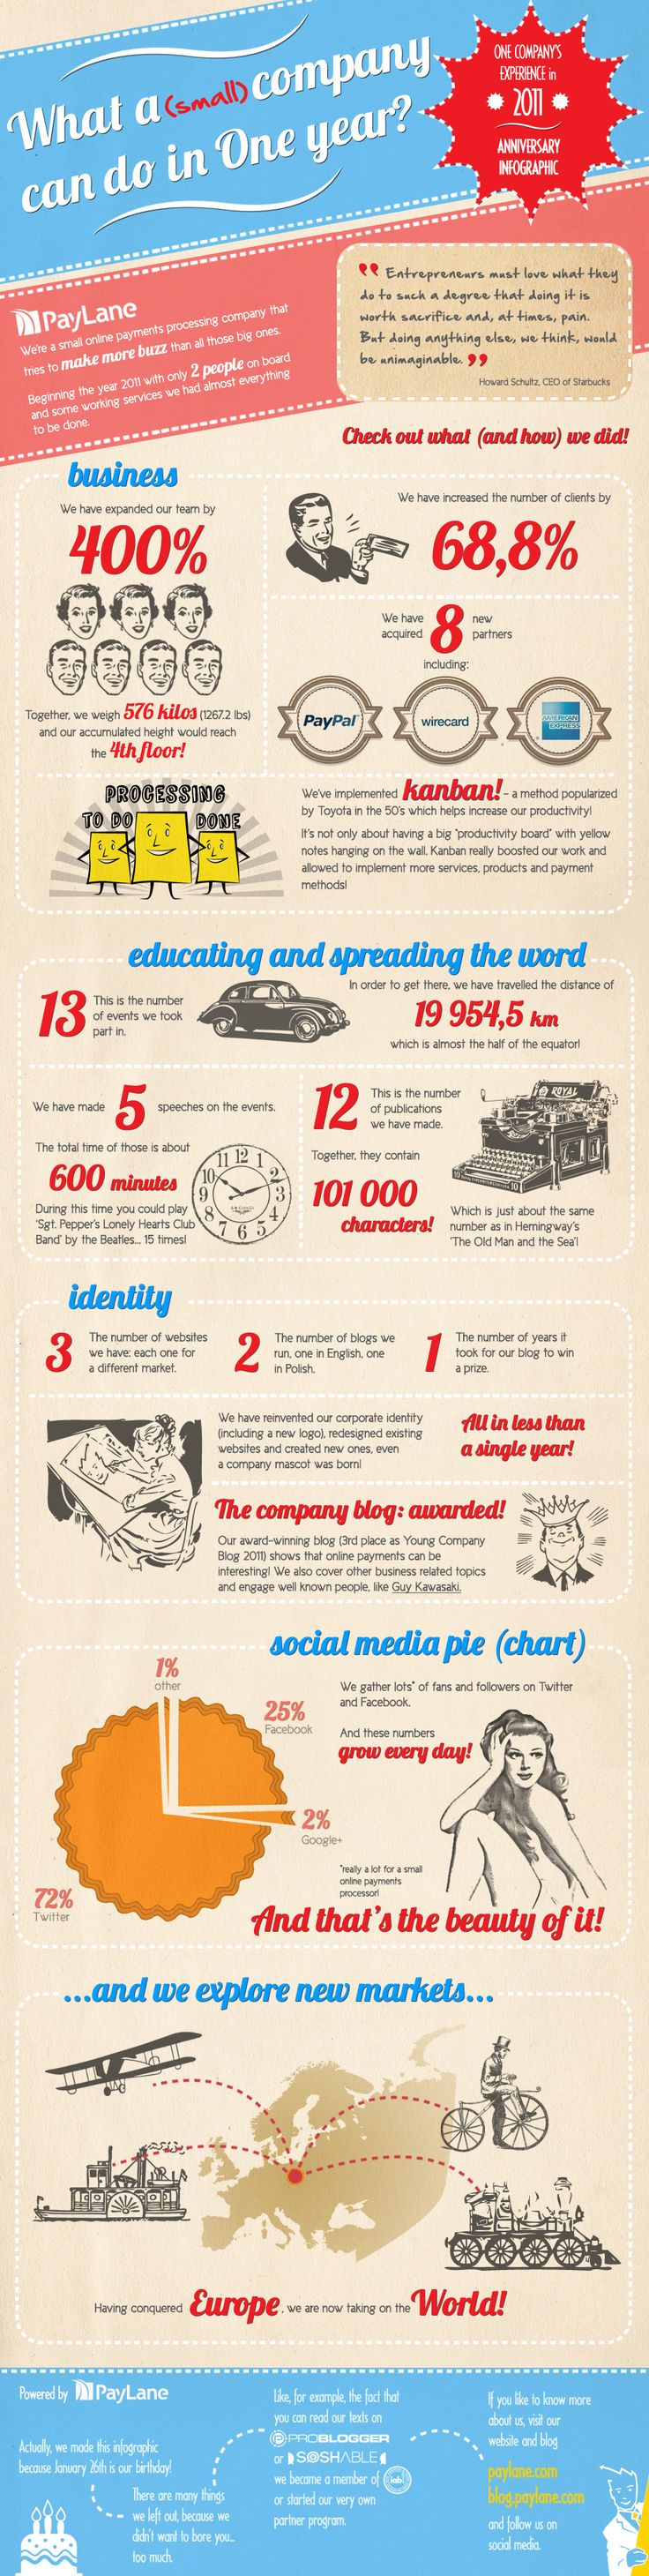 Infographic: What a Small Company Can Do In One Year